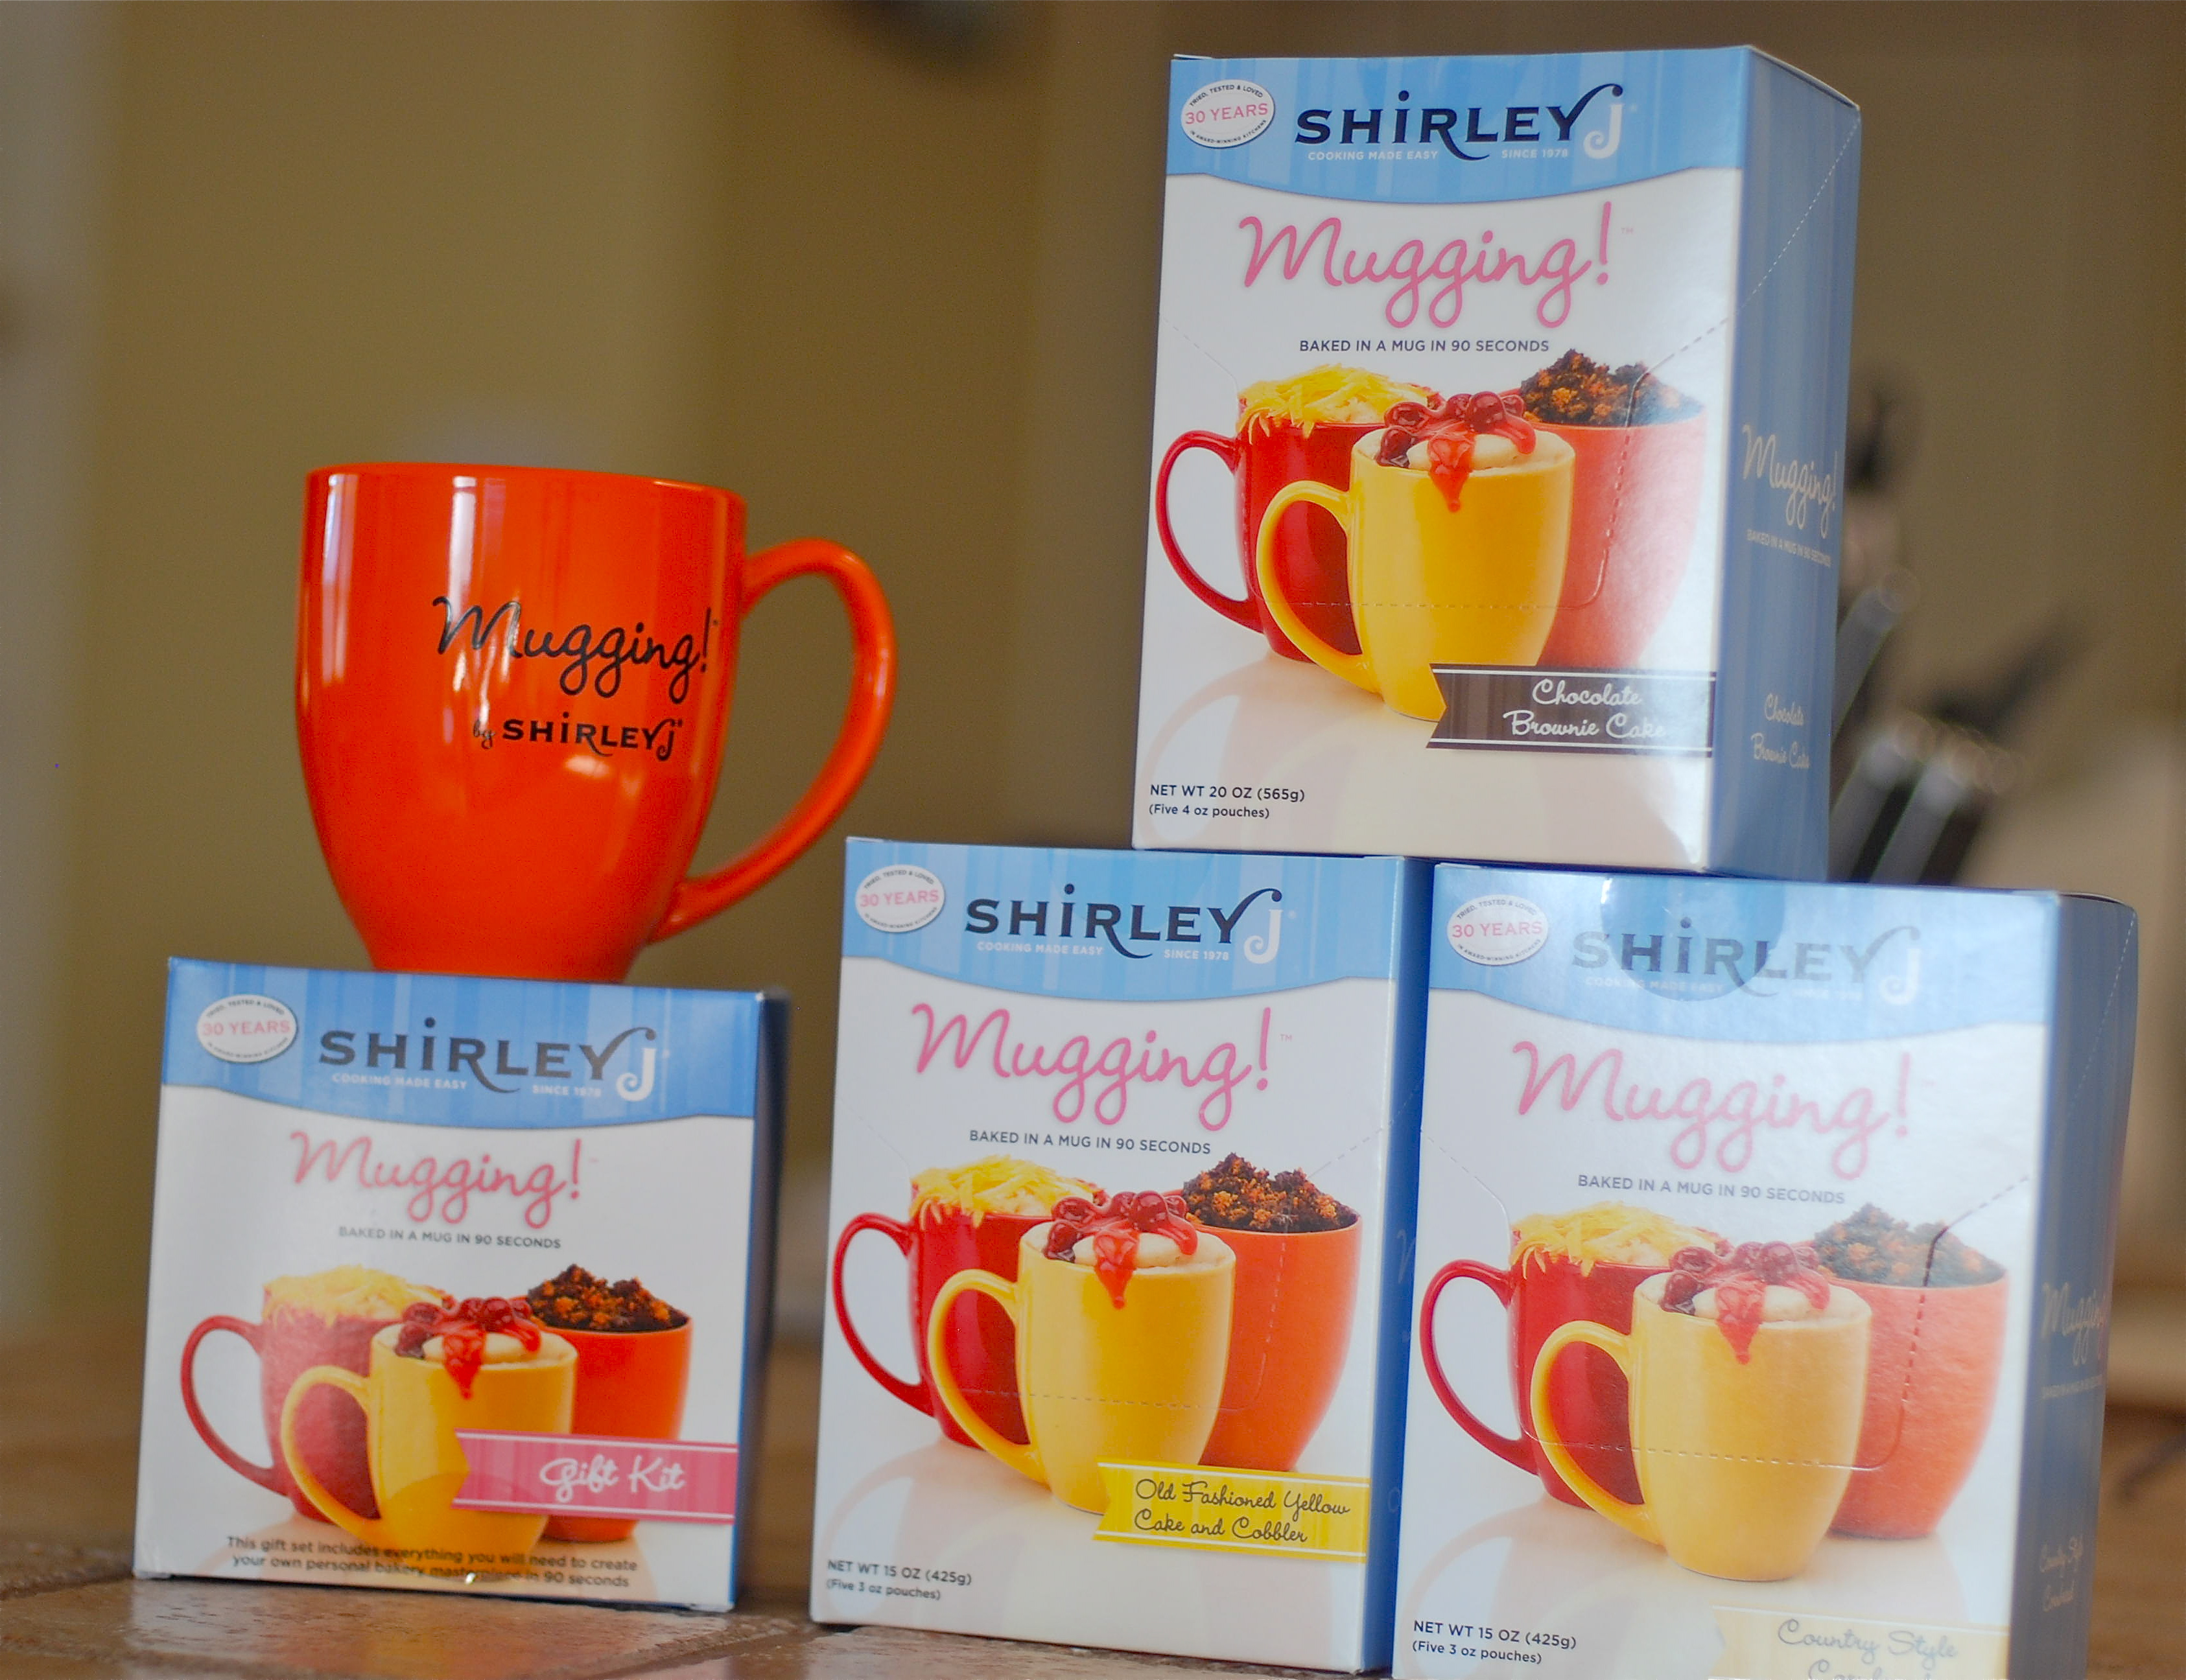 Cooking Made Easy with Shirley J